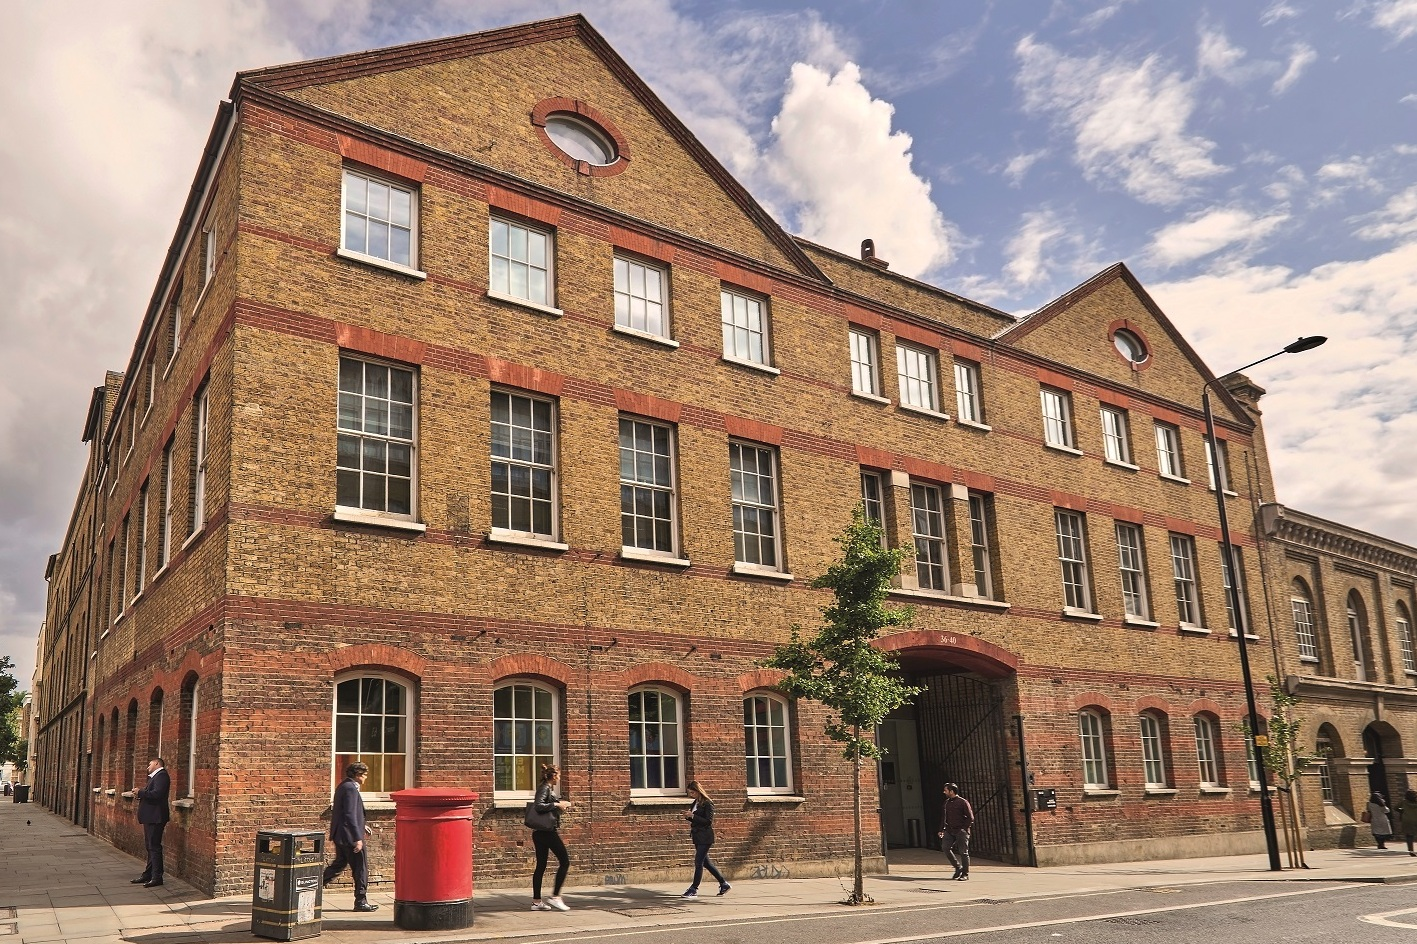 Exterior of Cottam House, where The Mills Fabrica is based at King's Cross, London